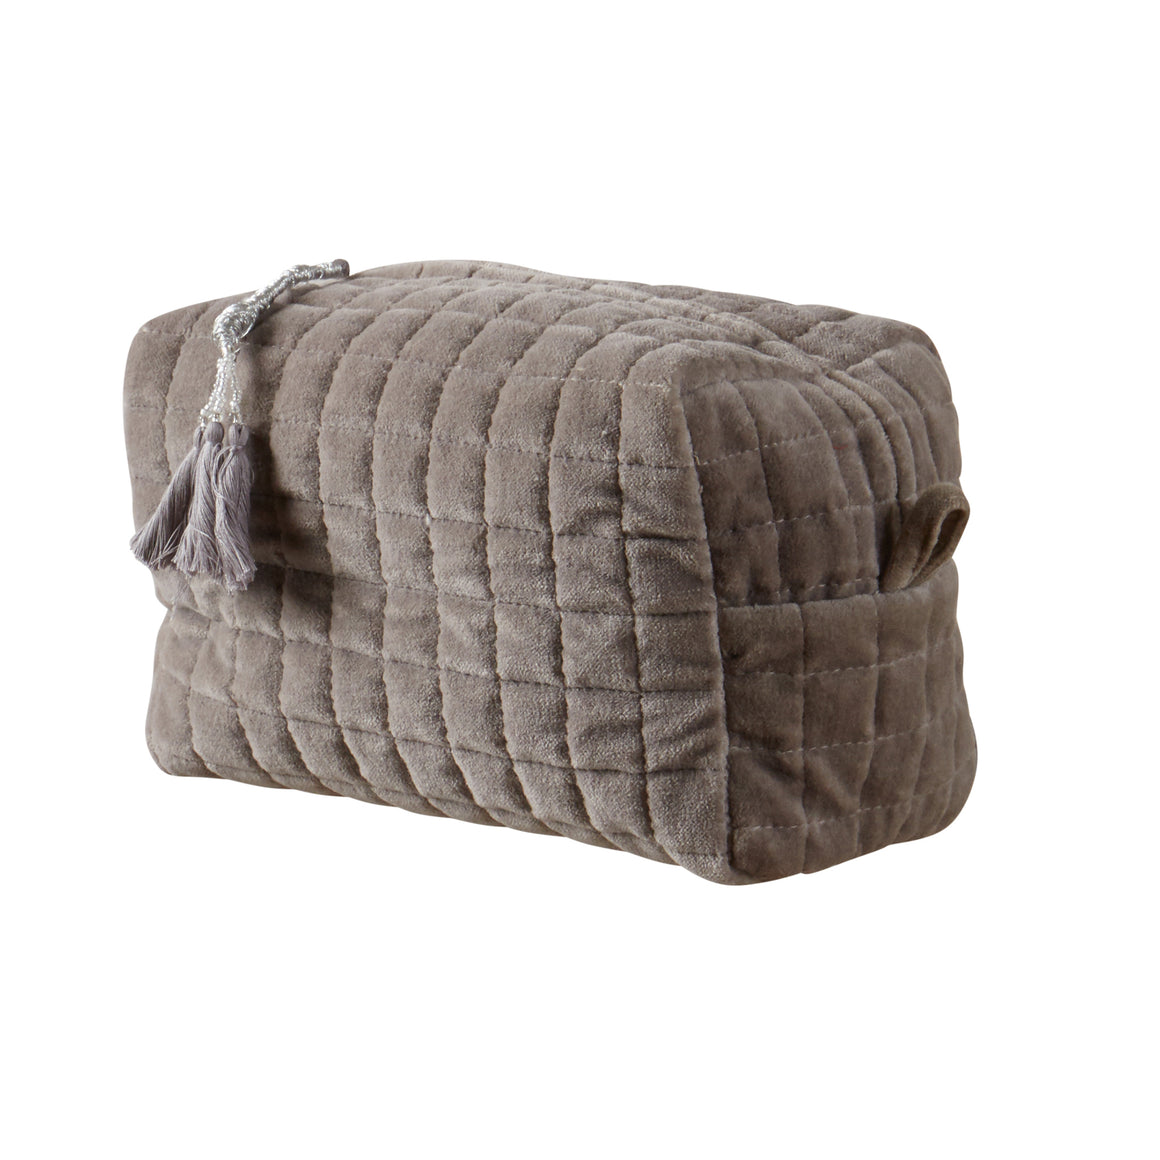 QUILTED VELVET COSMETIC BAG LIGHT GREY M - McHugh Lifestyle BOHEMIAN GLAMOUR